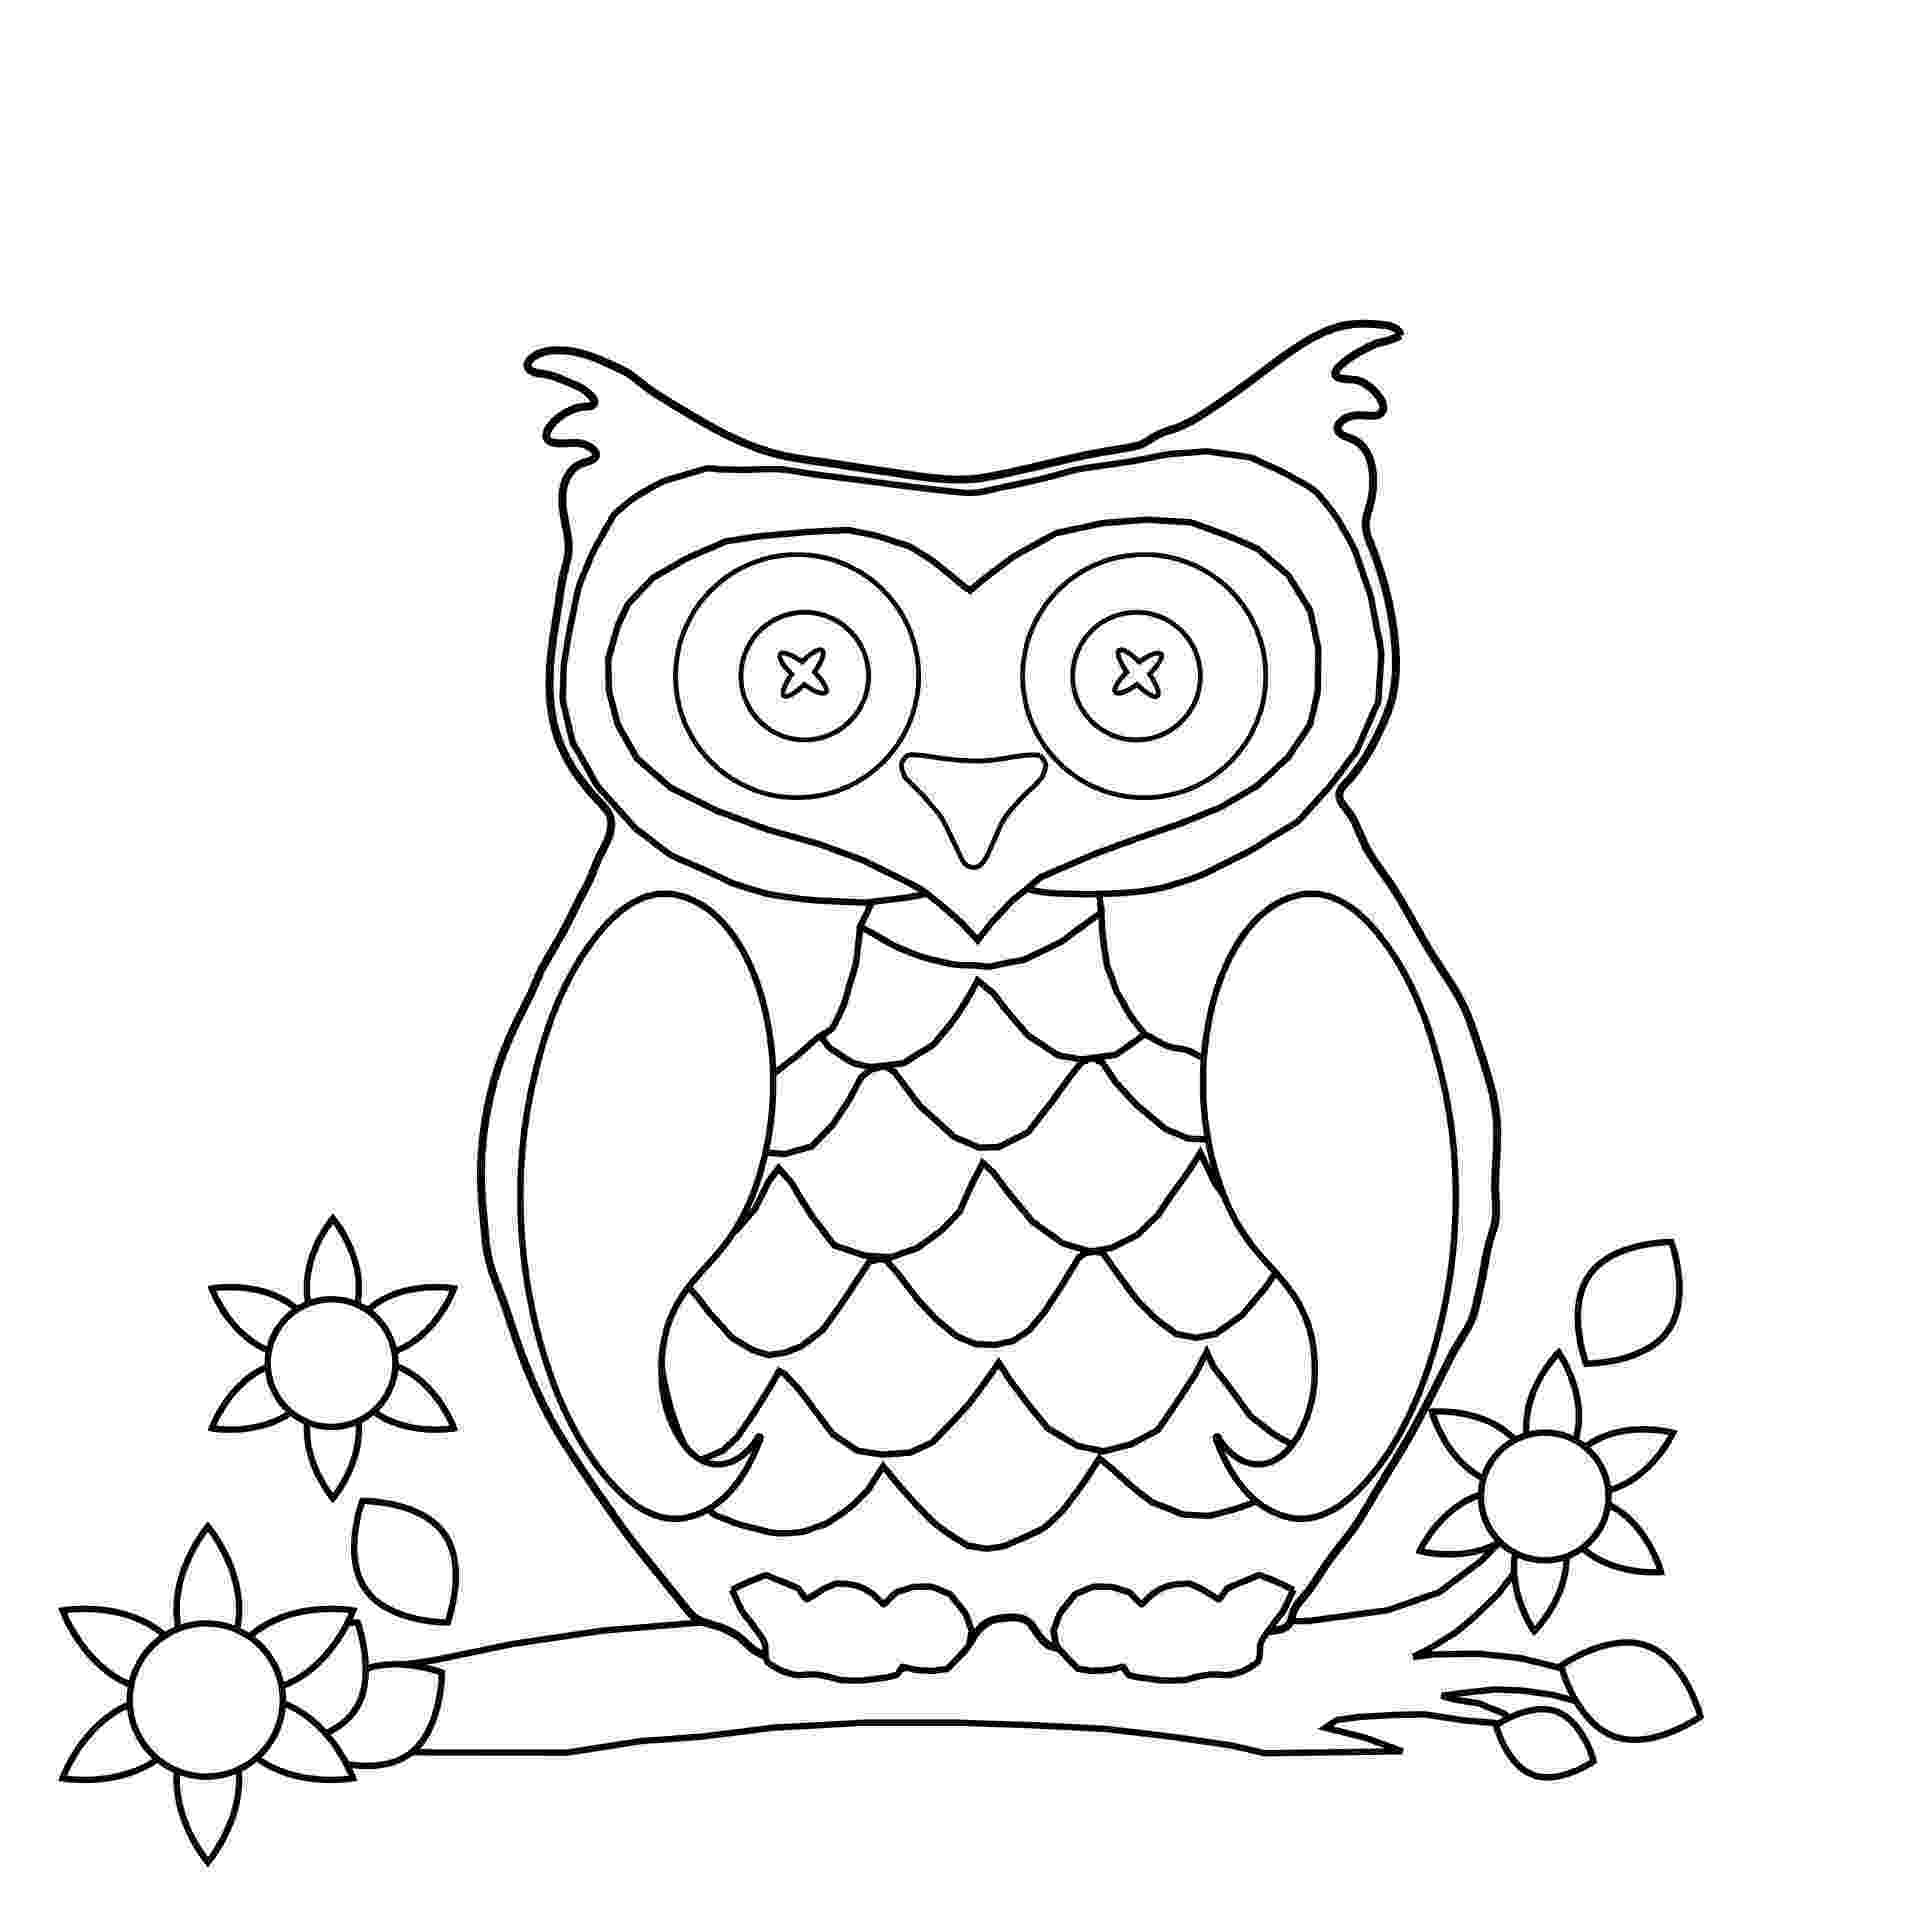 owl coloring picture baby owl coloring pages getcoloringpagescom owl coloring picture